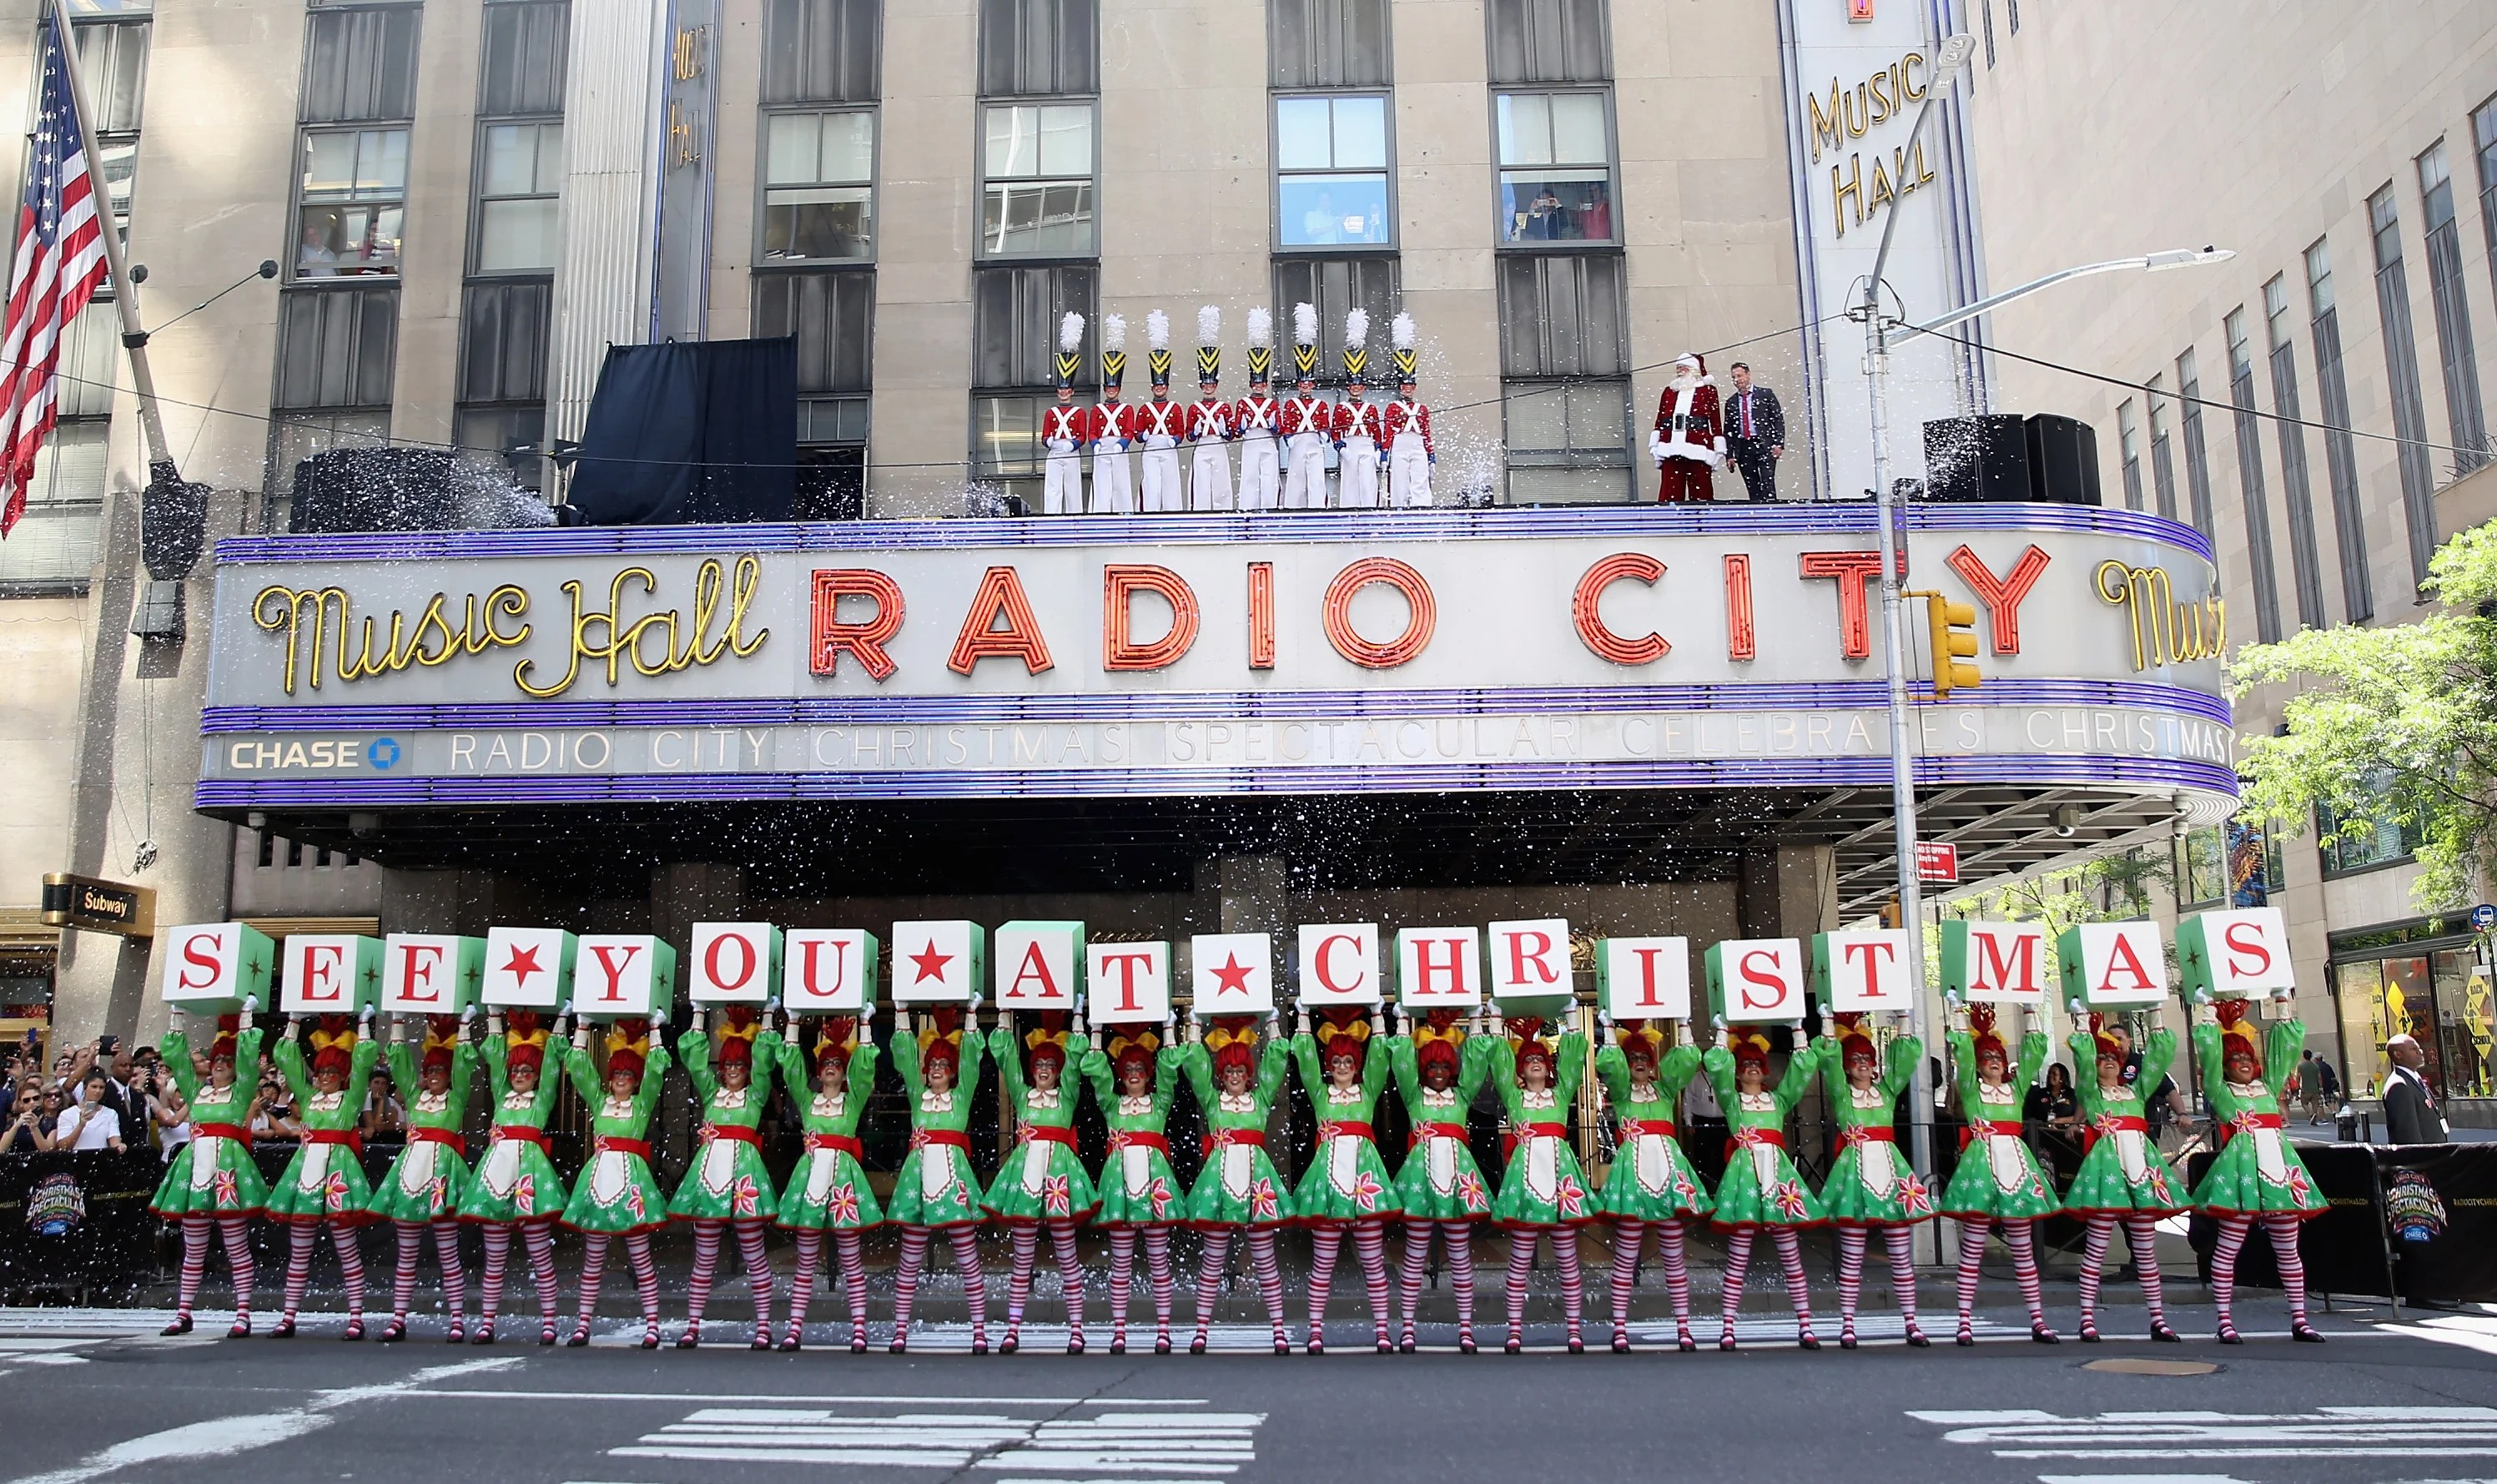 How to Save Money on Radio City Christmas Spectacular Tickets